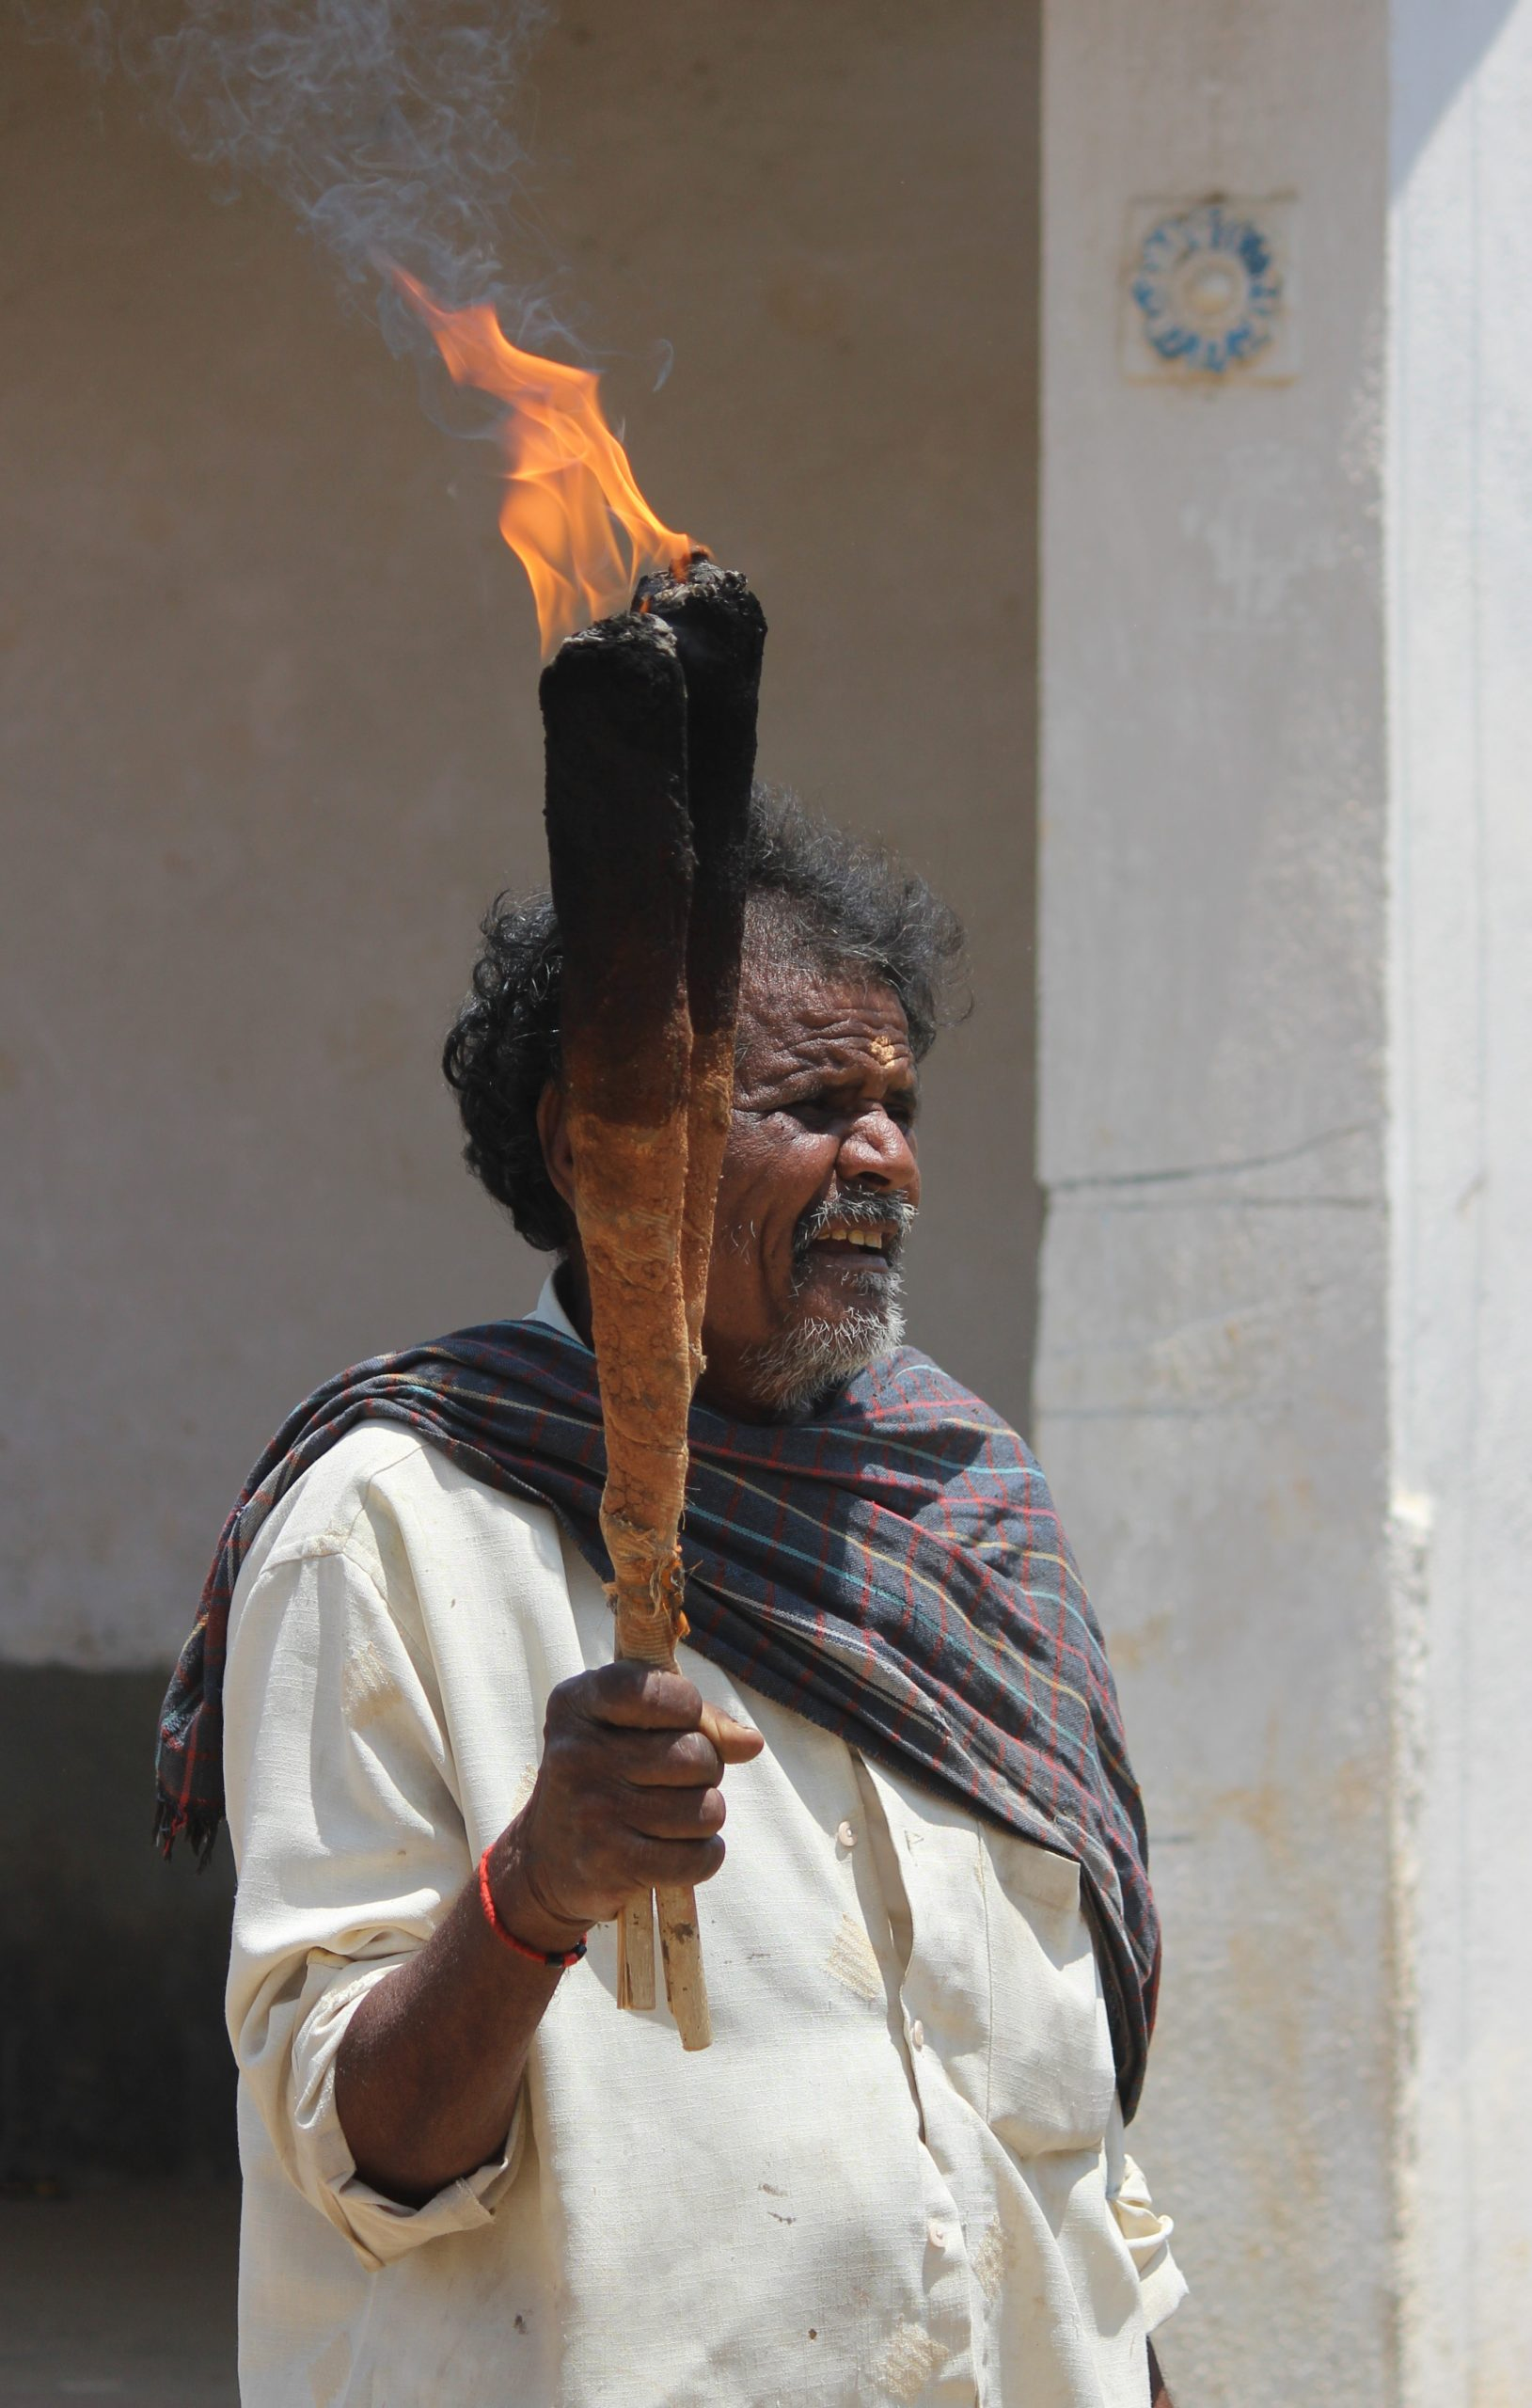 A man holding a fire torch